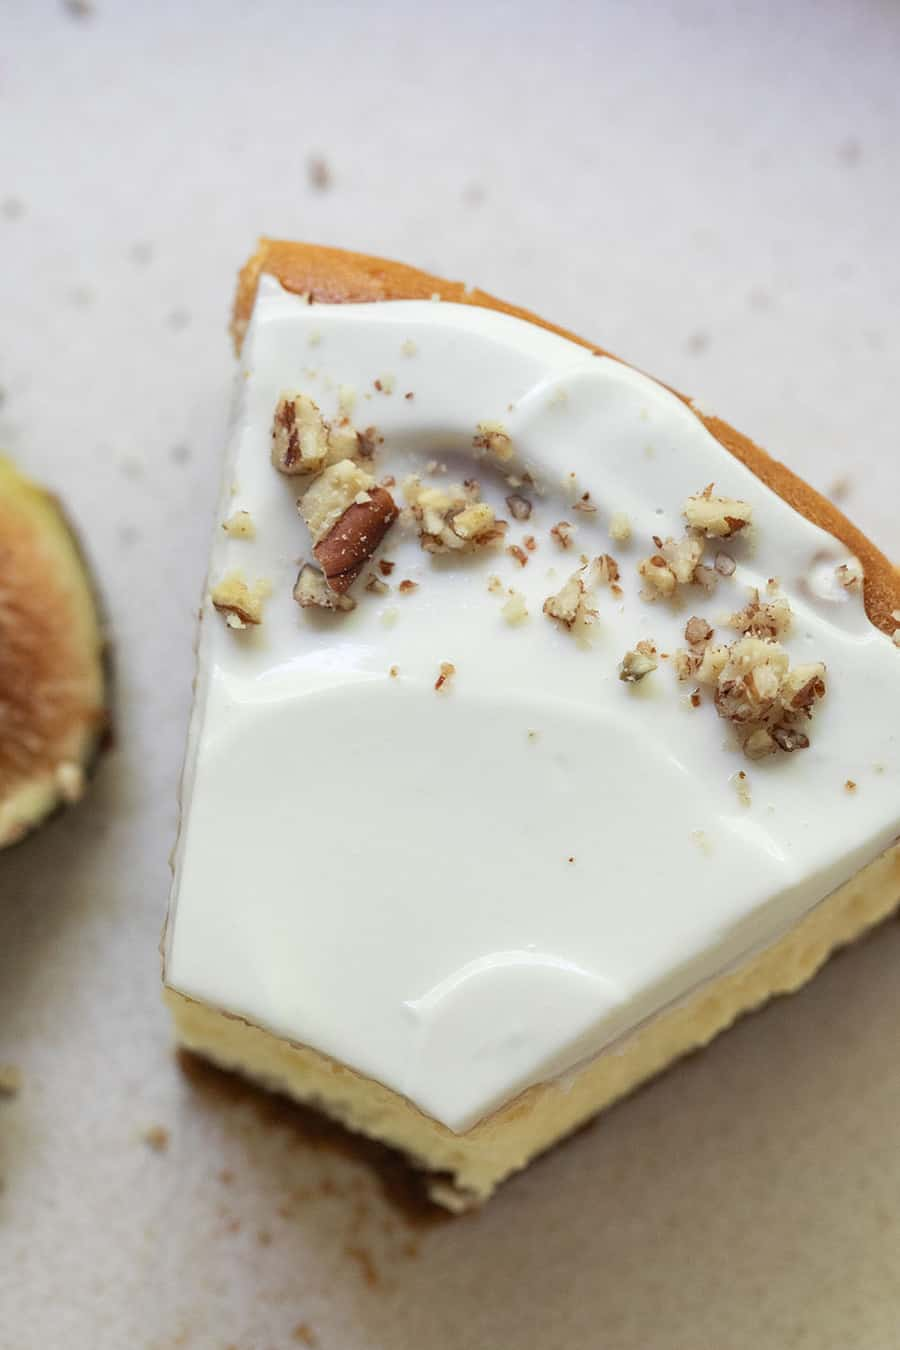 Slice of cheesecake with crushed walnuts and sour cream topping